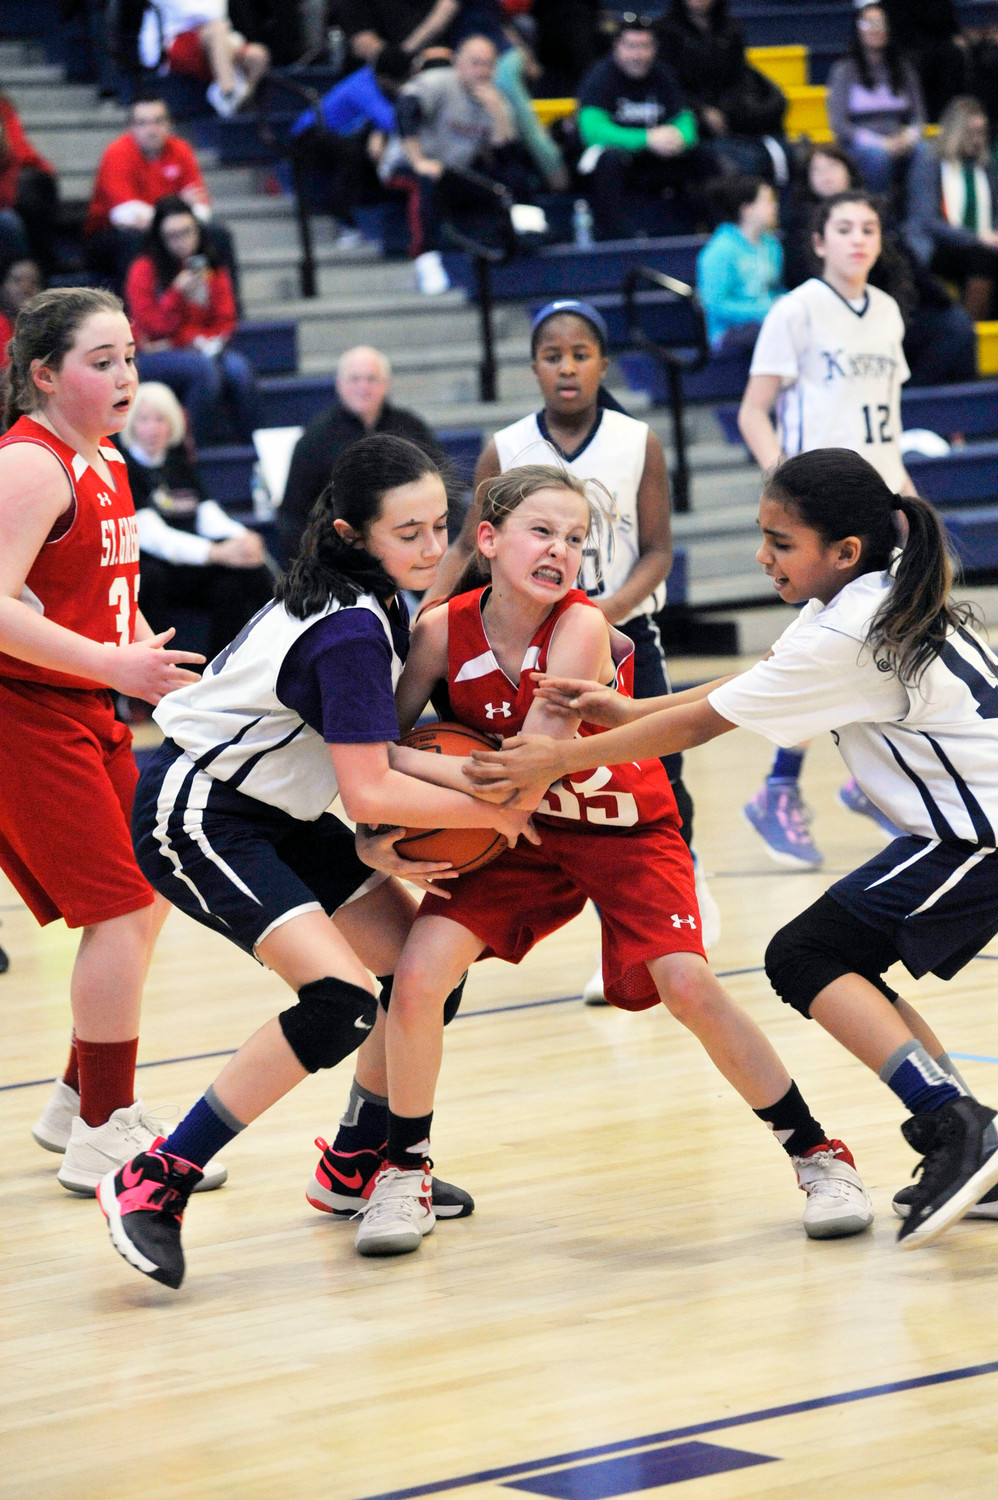 Riley Harold of St. Gregory Barbarigo, Garnerville, center, battles Julian Cinquina, left, and Sofia Tavarez, right, both of St. Columbanus, Cortlandt Manor, in the archdiocesan CYO fifth-grade girls' championship game at Mount St. Michael Academy in the Bronx March 17. St. Columbanus won 19-15.